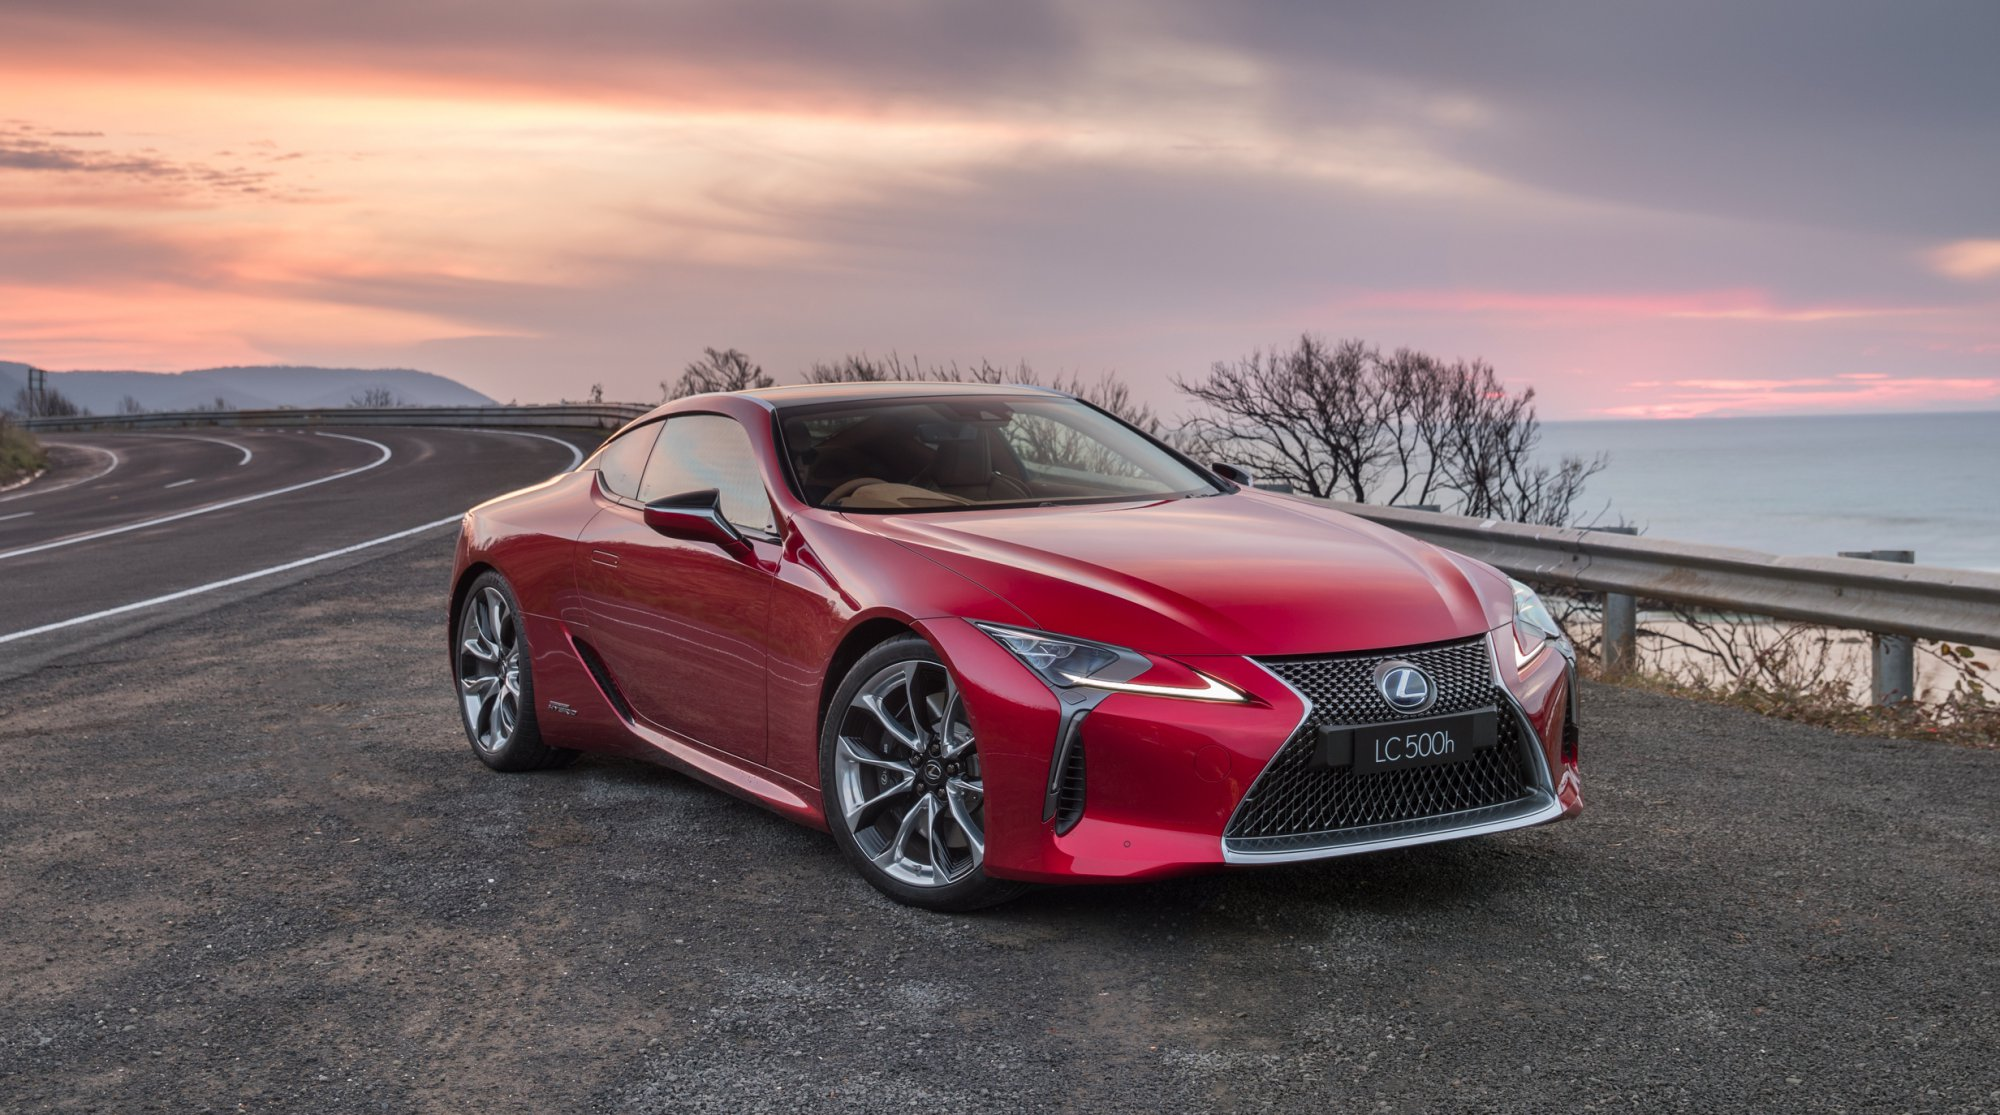 News 2017 Lexus Lc500 Lc500h Make Oz Landfall